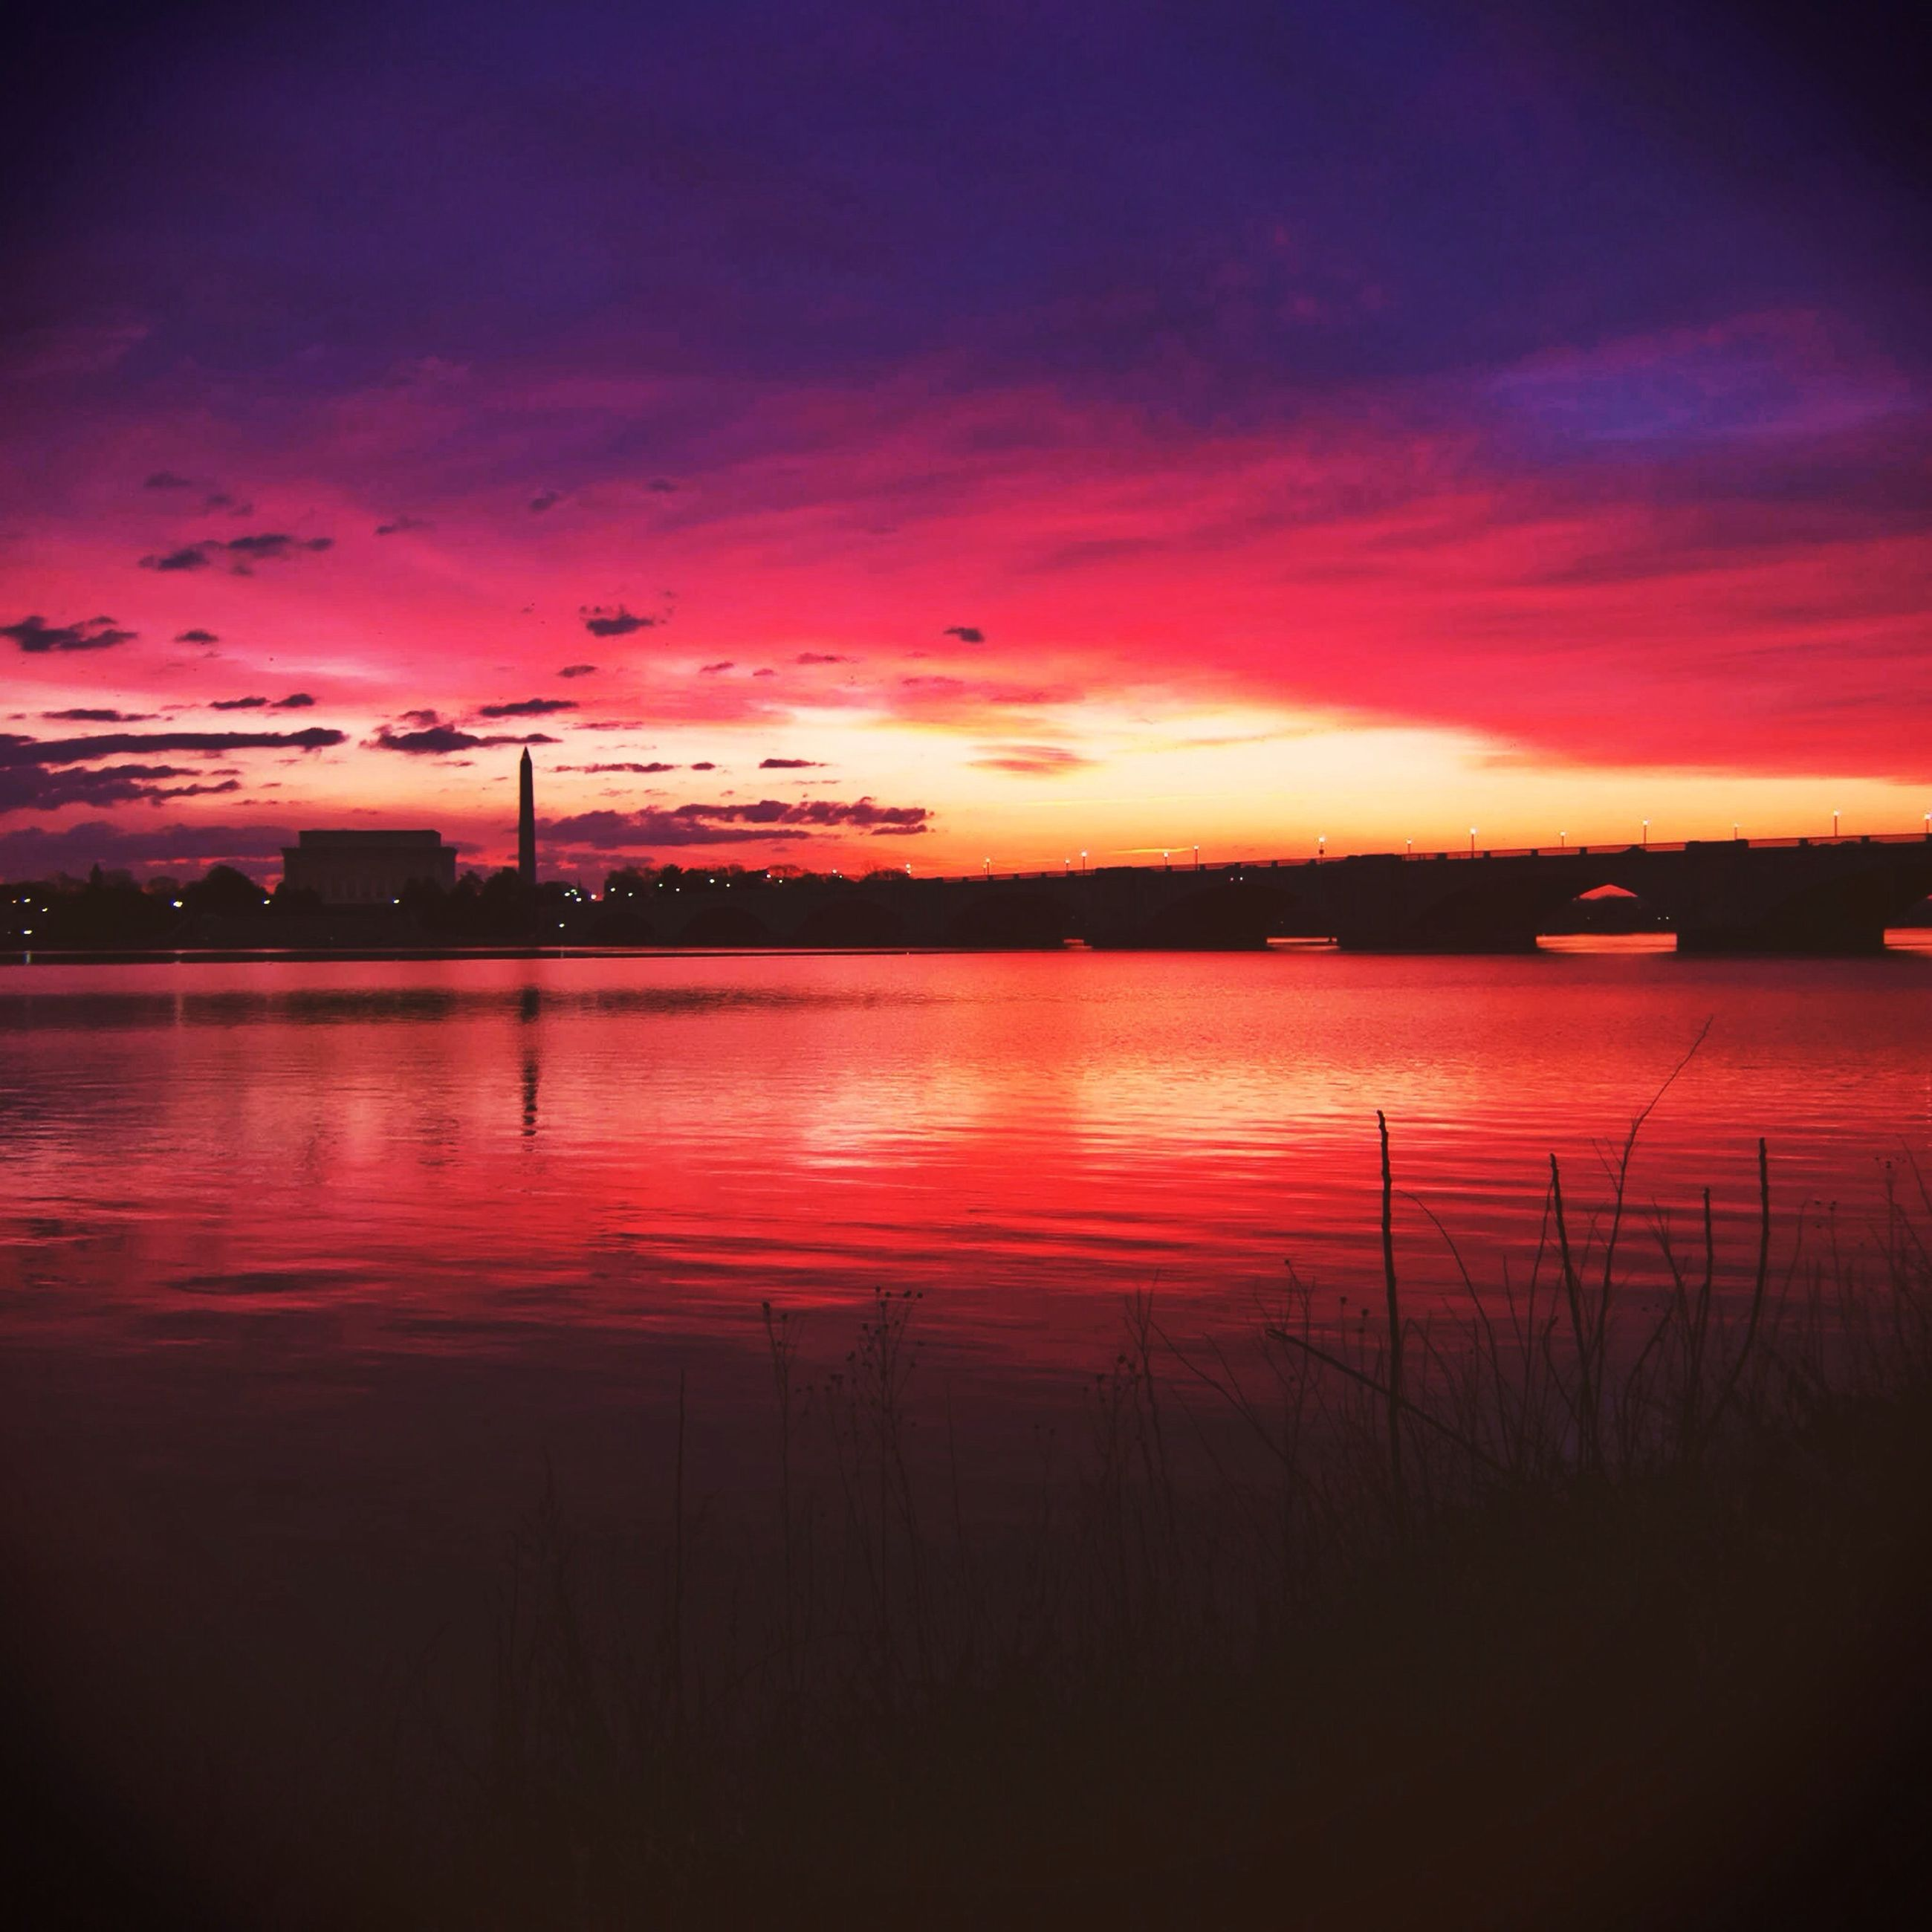 sunset, water, sky, orange color, silhouette, scenics, tranquility, tranquil scene, beauty in nature, reflection, lake, idyllic, cloud - sky, nature, river, dusk, red, dramatic sky, cloud, calm